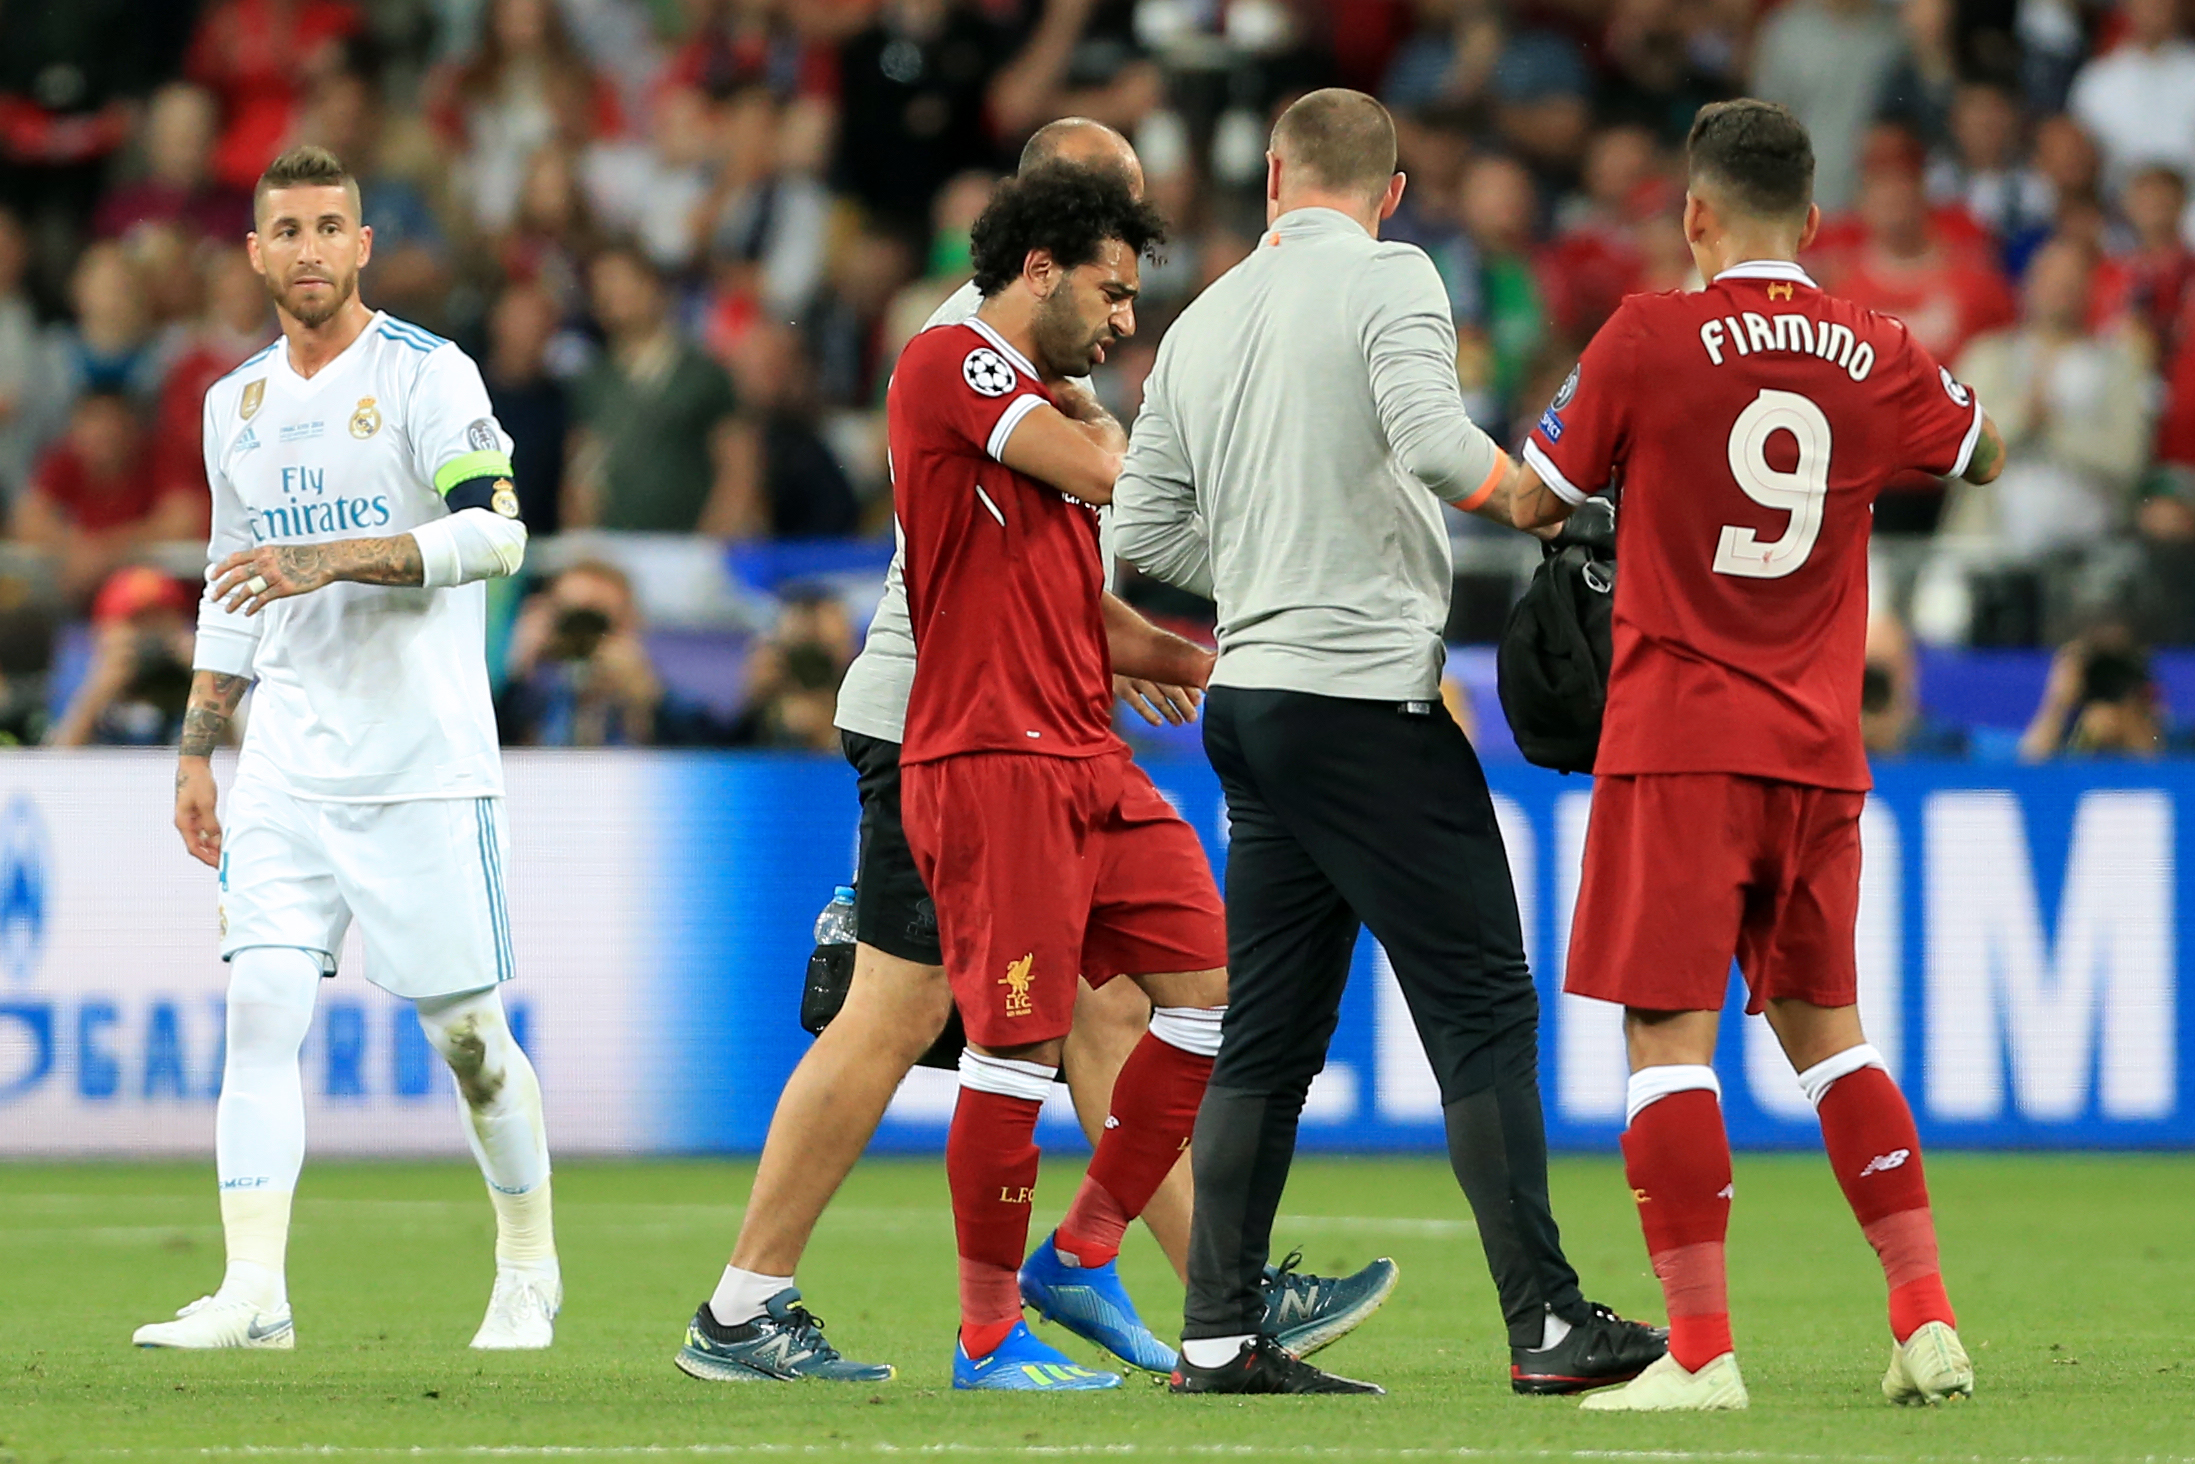 Mohamed Salah leaves the field of play during the 2018 UEFA Champions League final